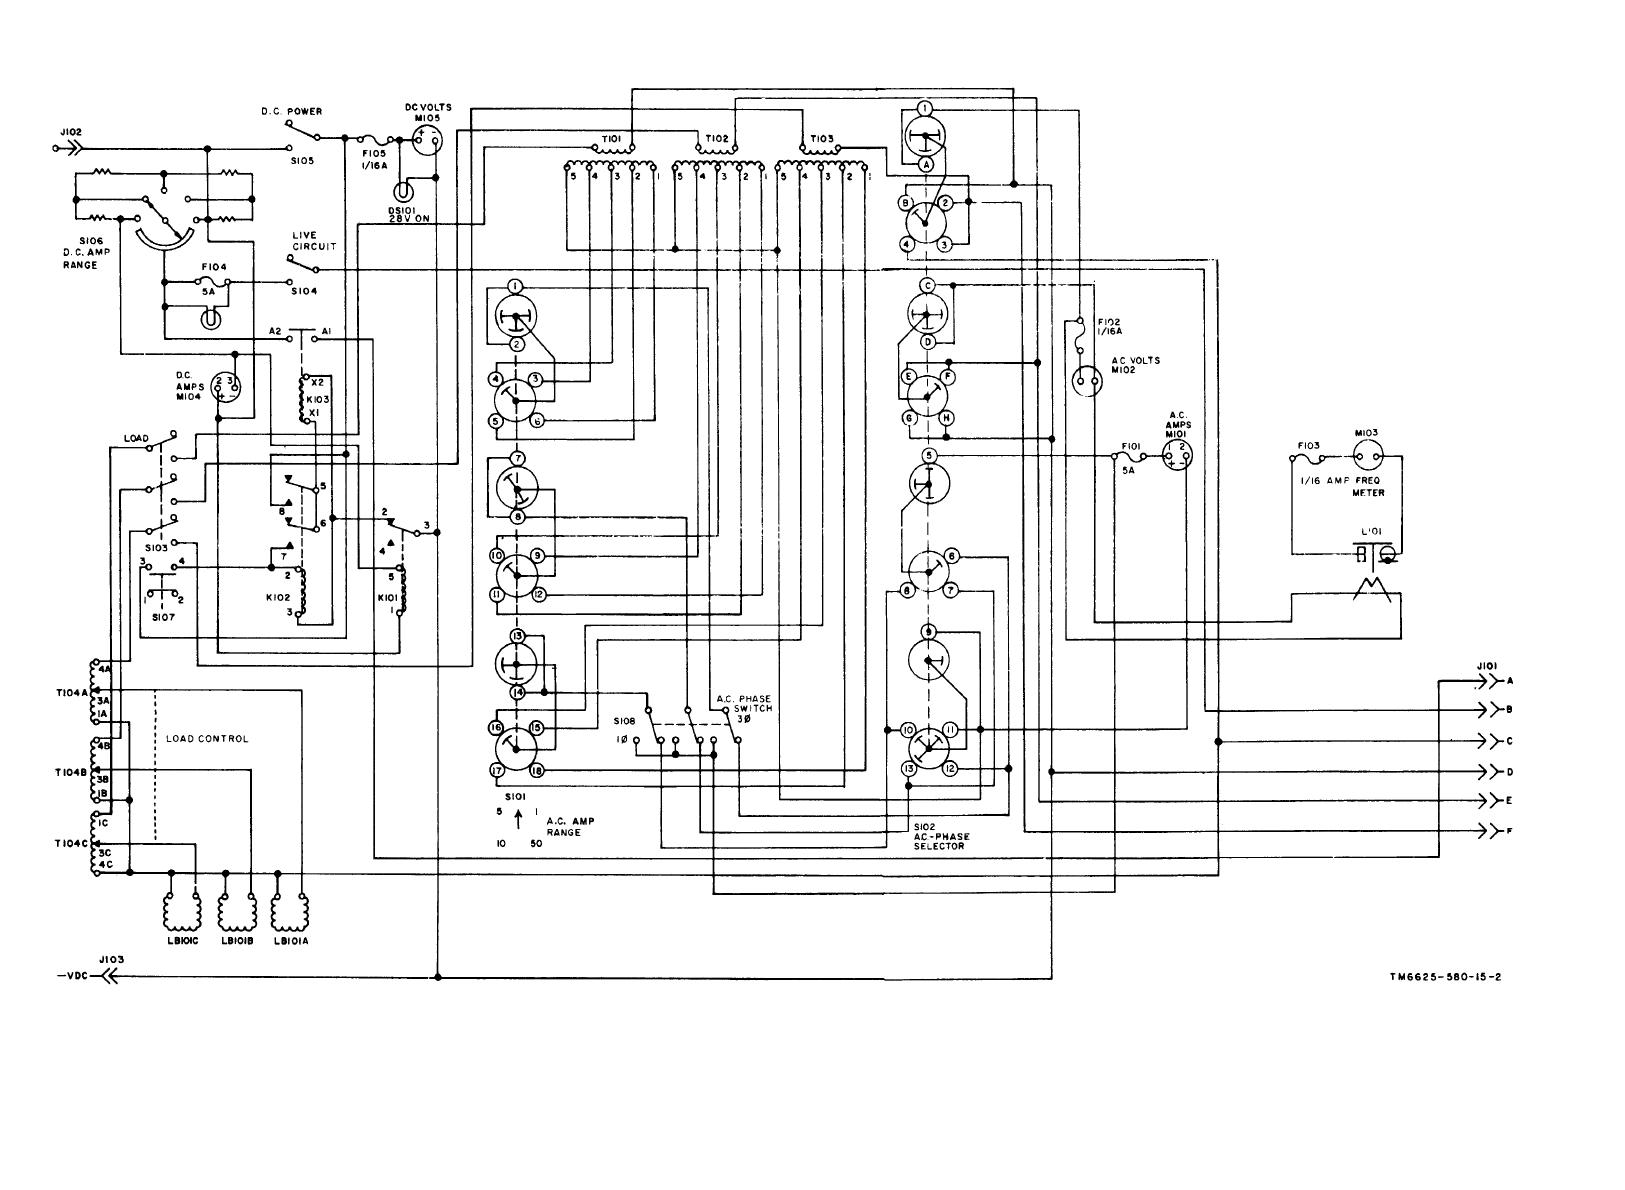 Fabulous Circuit Diagram Generator Wiring Library Wiring Digital Resources Bemuashebarightsorg